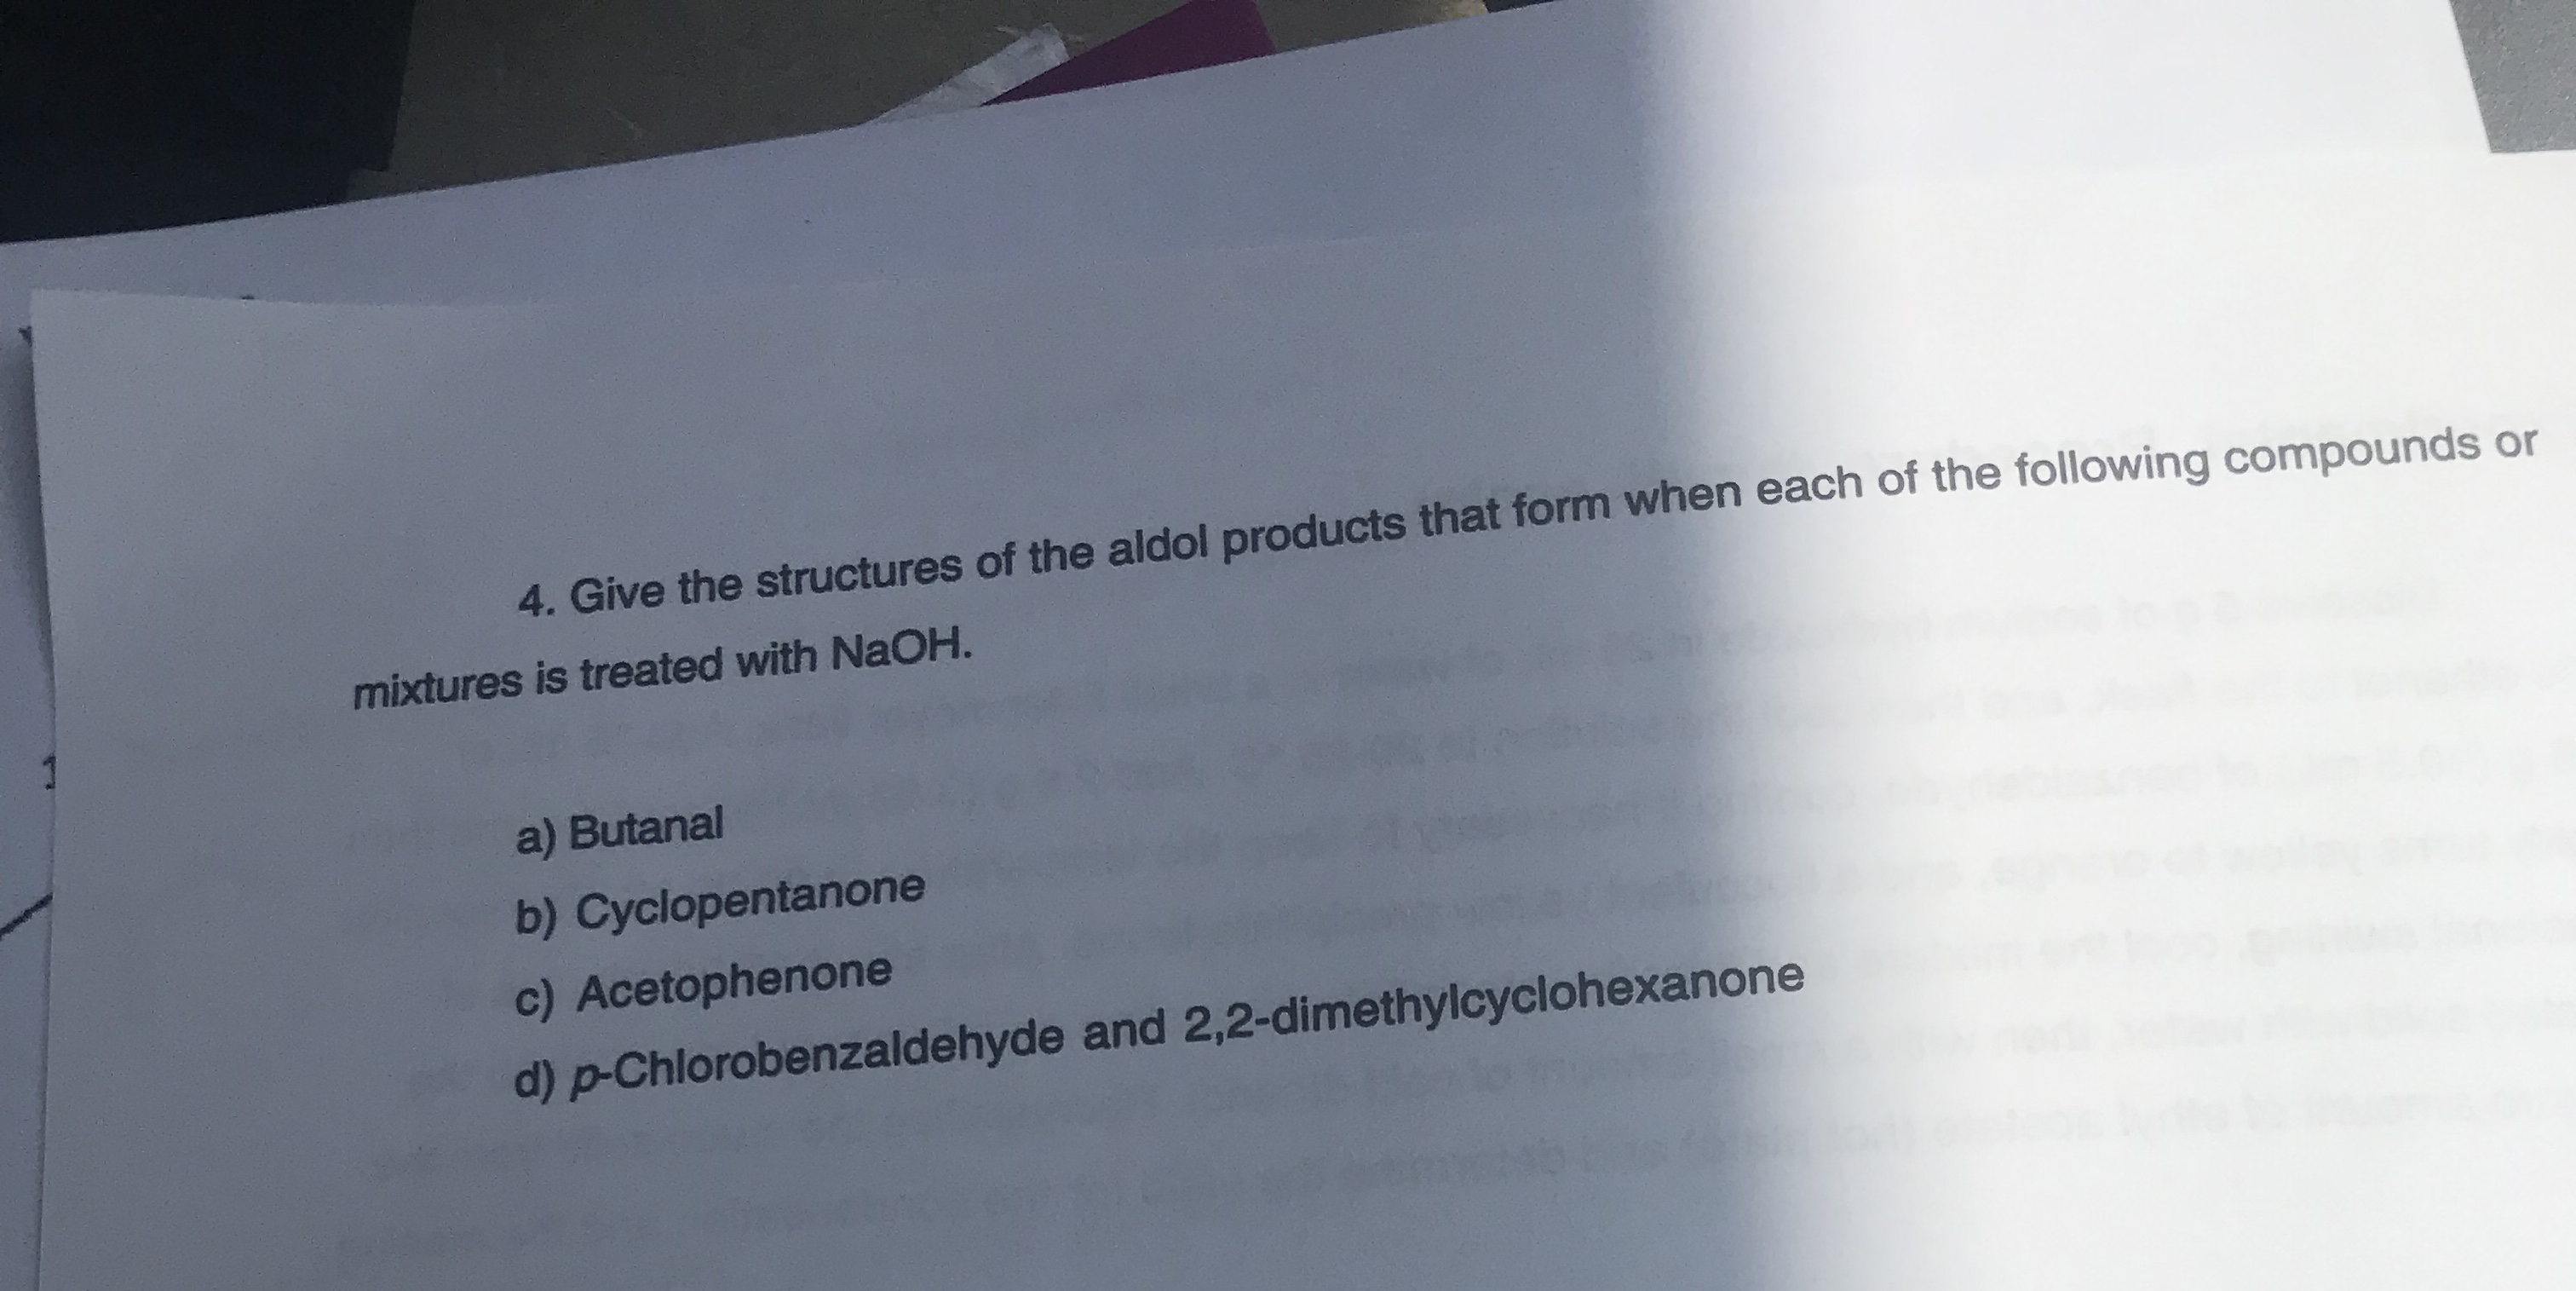 4. Give the structures of the aldol products that form when each of the following compounds or mixtures is treated with NAOH. a) Butanal b) Cyclopentanone c) Acetophenone d)-Chlorobenzaldehyde and 2,2-dimethylcyclohexanone